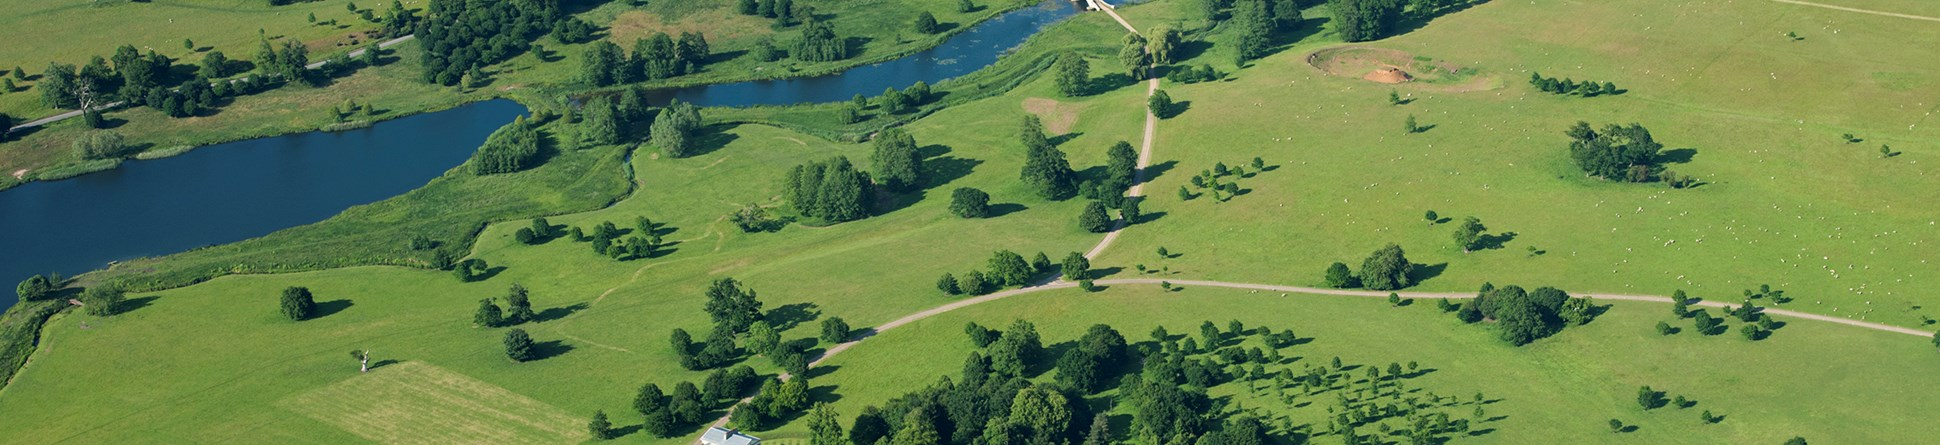 Heveningham Hall, Suffolk from the air. A Capability Brown landscape listed at Grade II* © Historic England